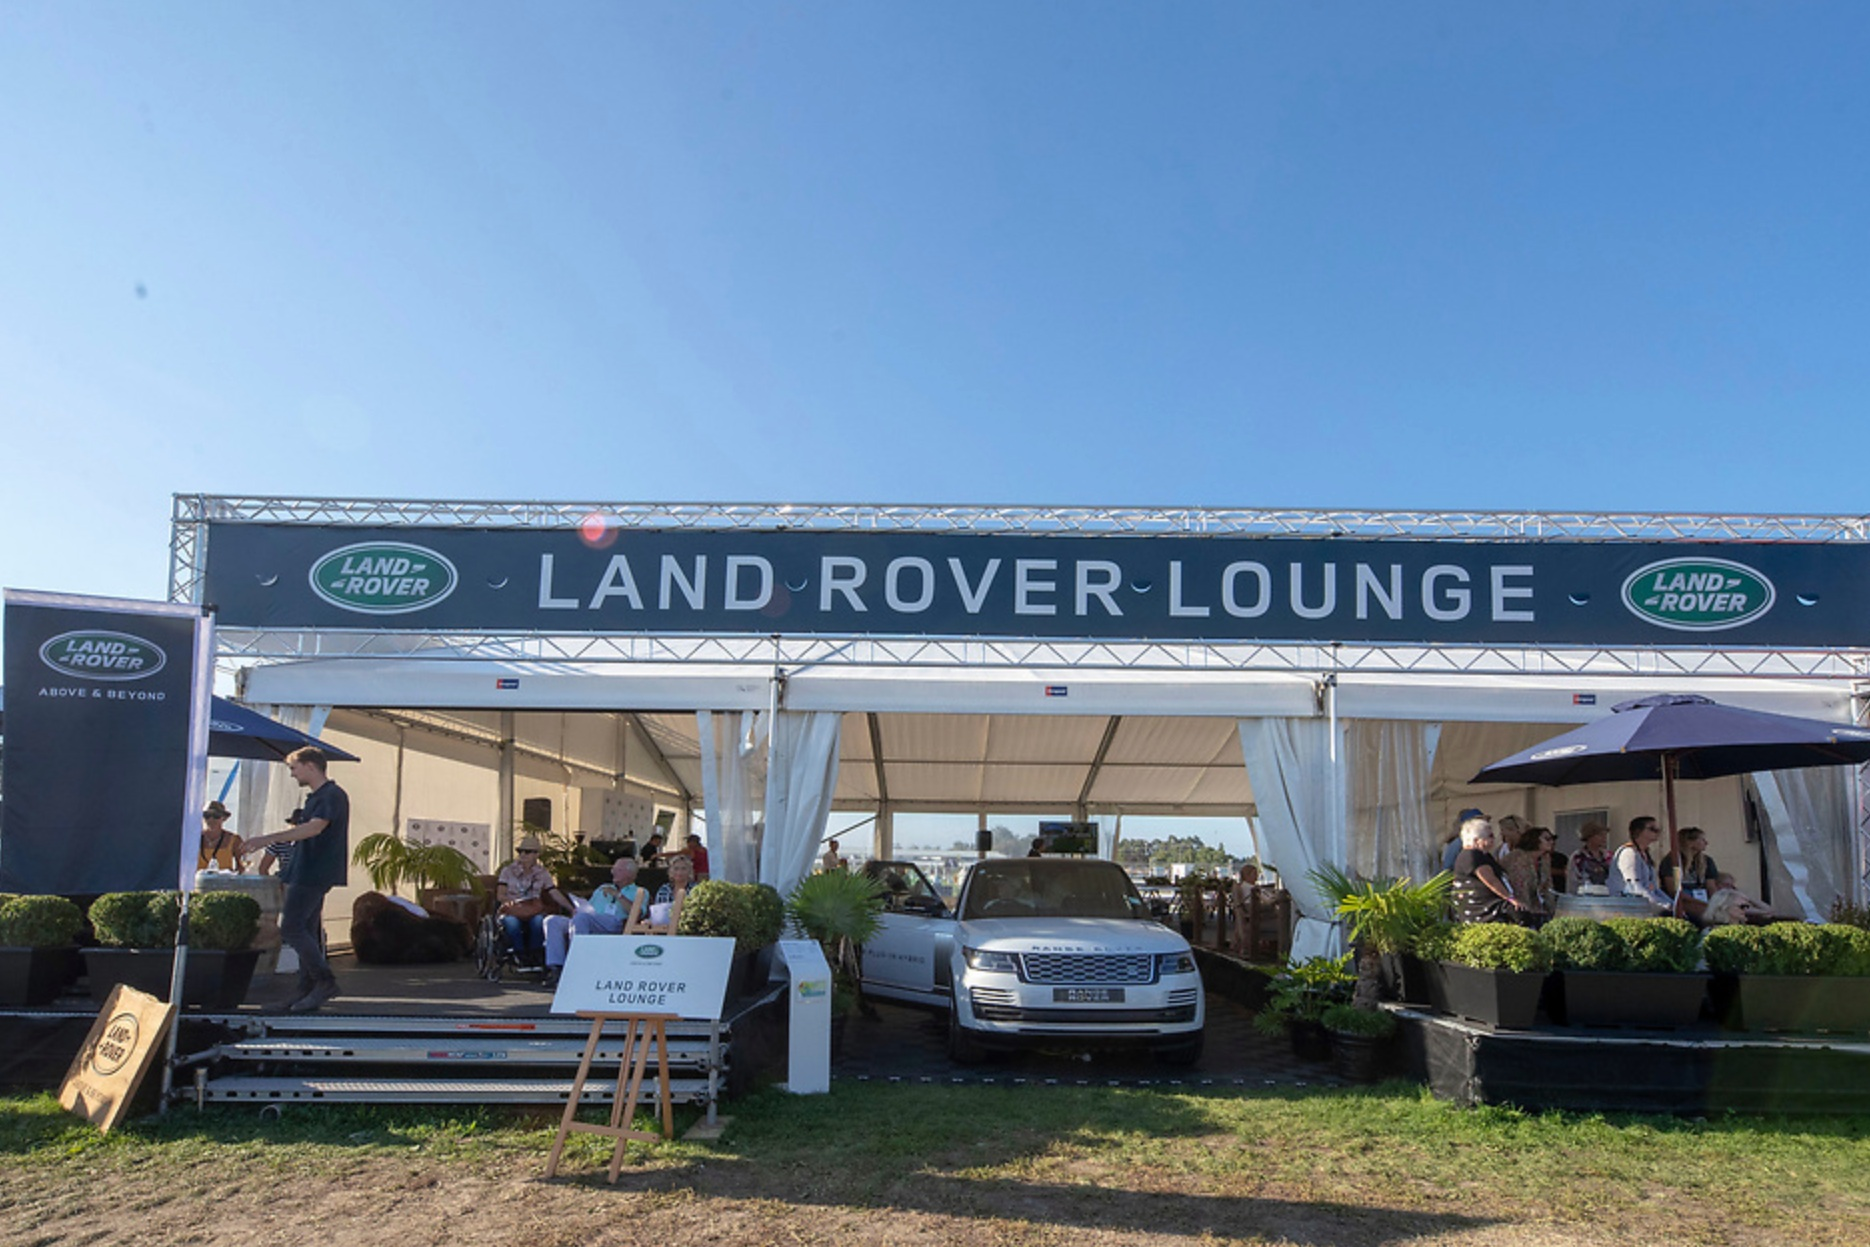 Land Rover Lounge - Full furniture marquee for Land Rover VIP guests at Horse of the Year 2018.